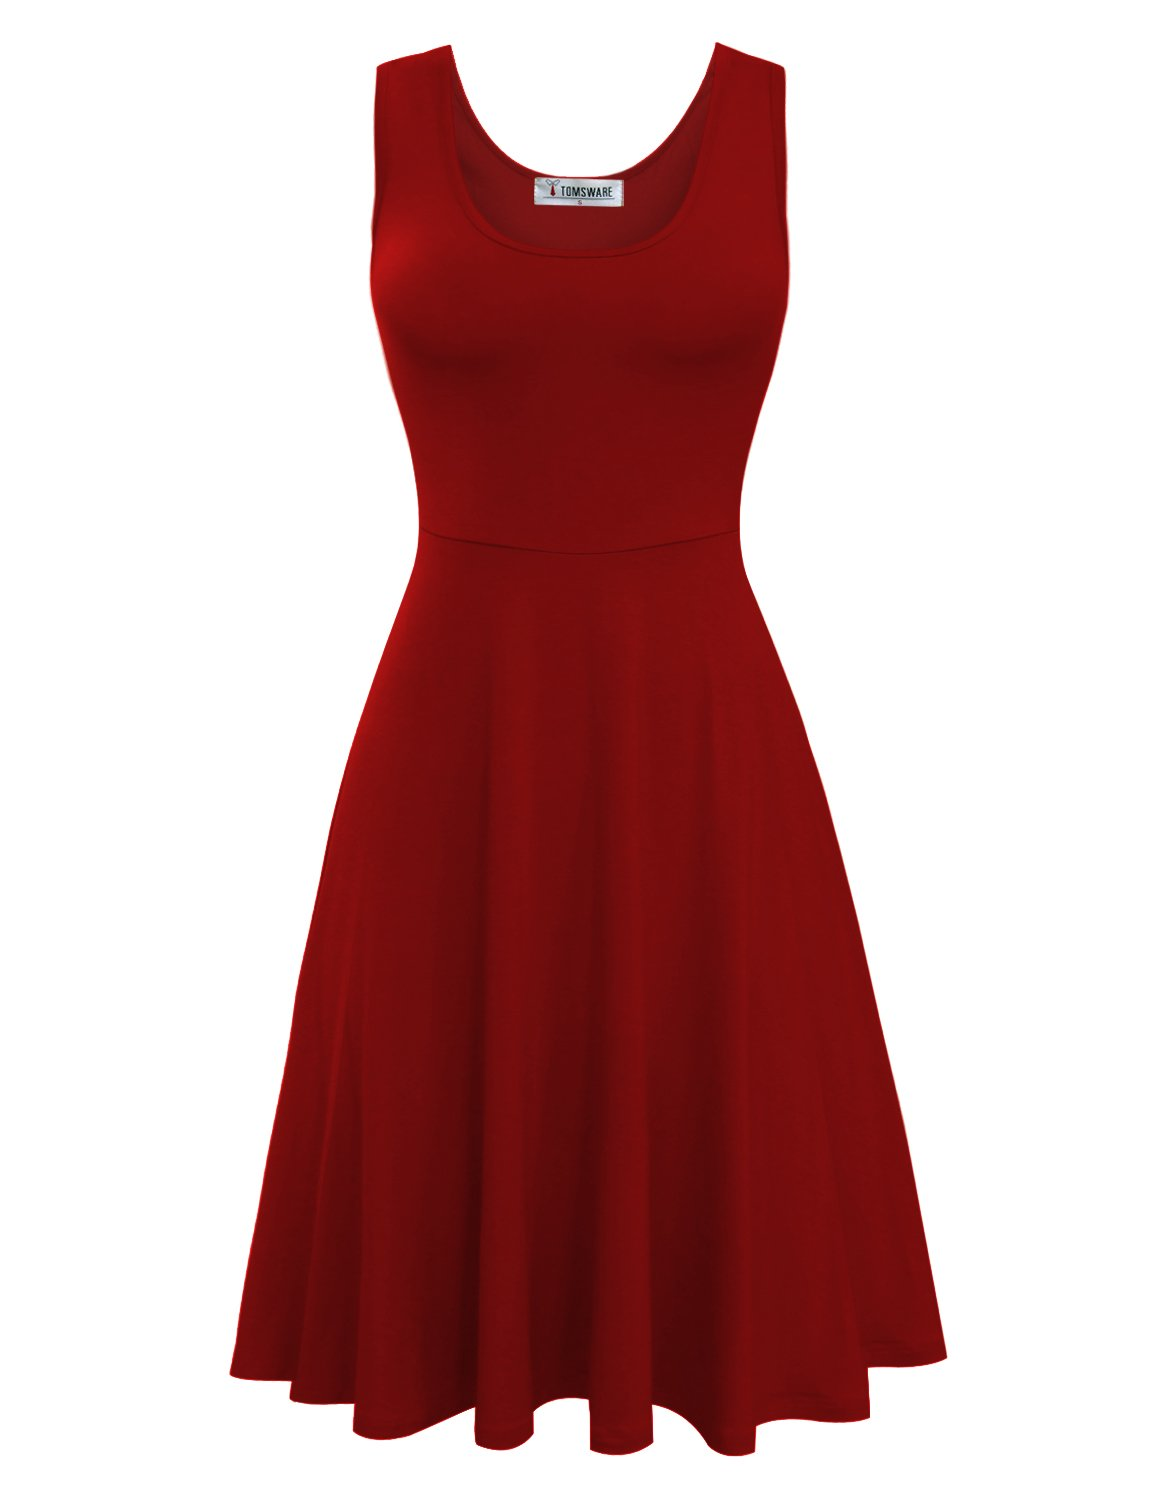 Tom's Ware Womens Casual Fit and Flare Floral Sleeveless Dress TWCWD054-D155-DARKRED-US S